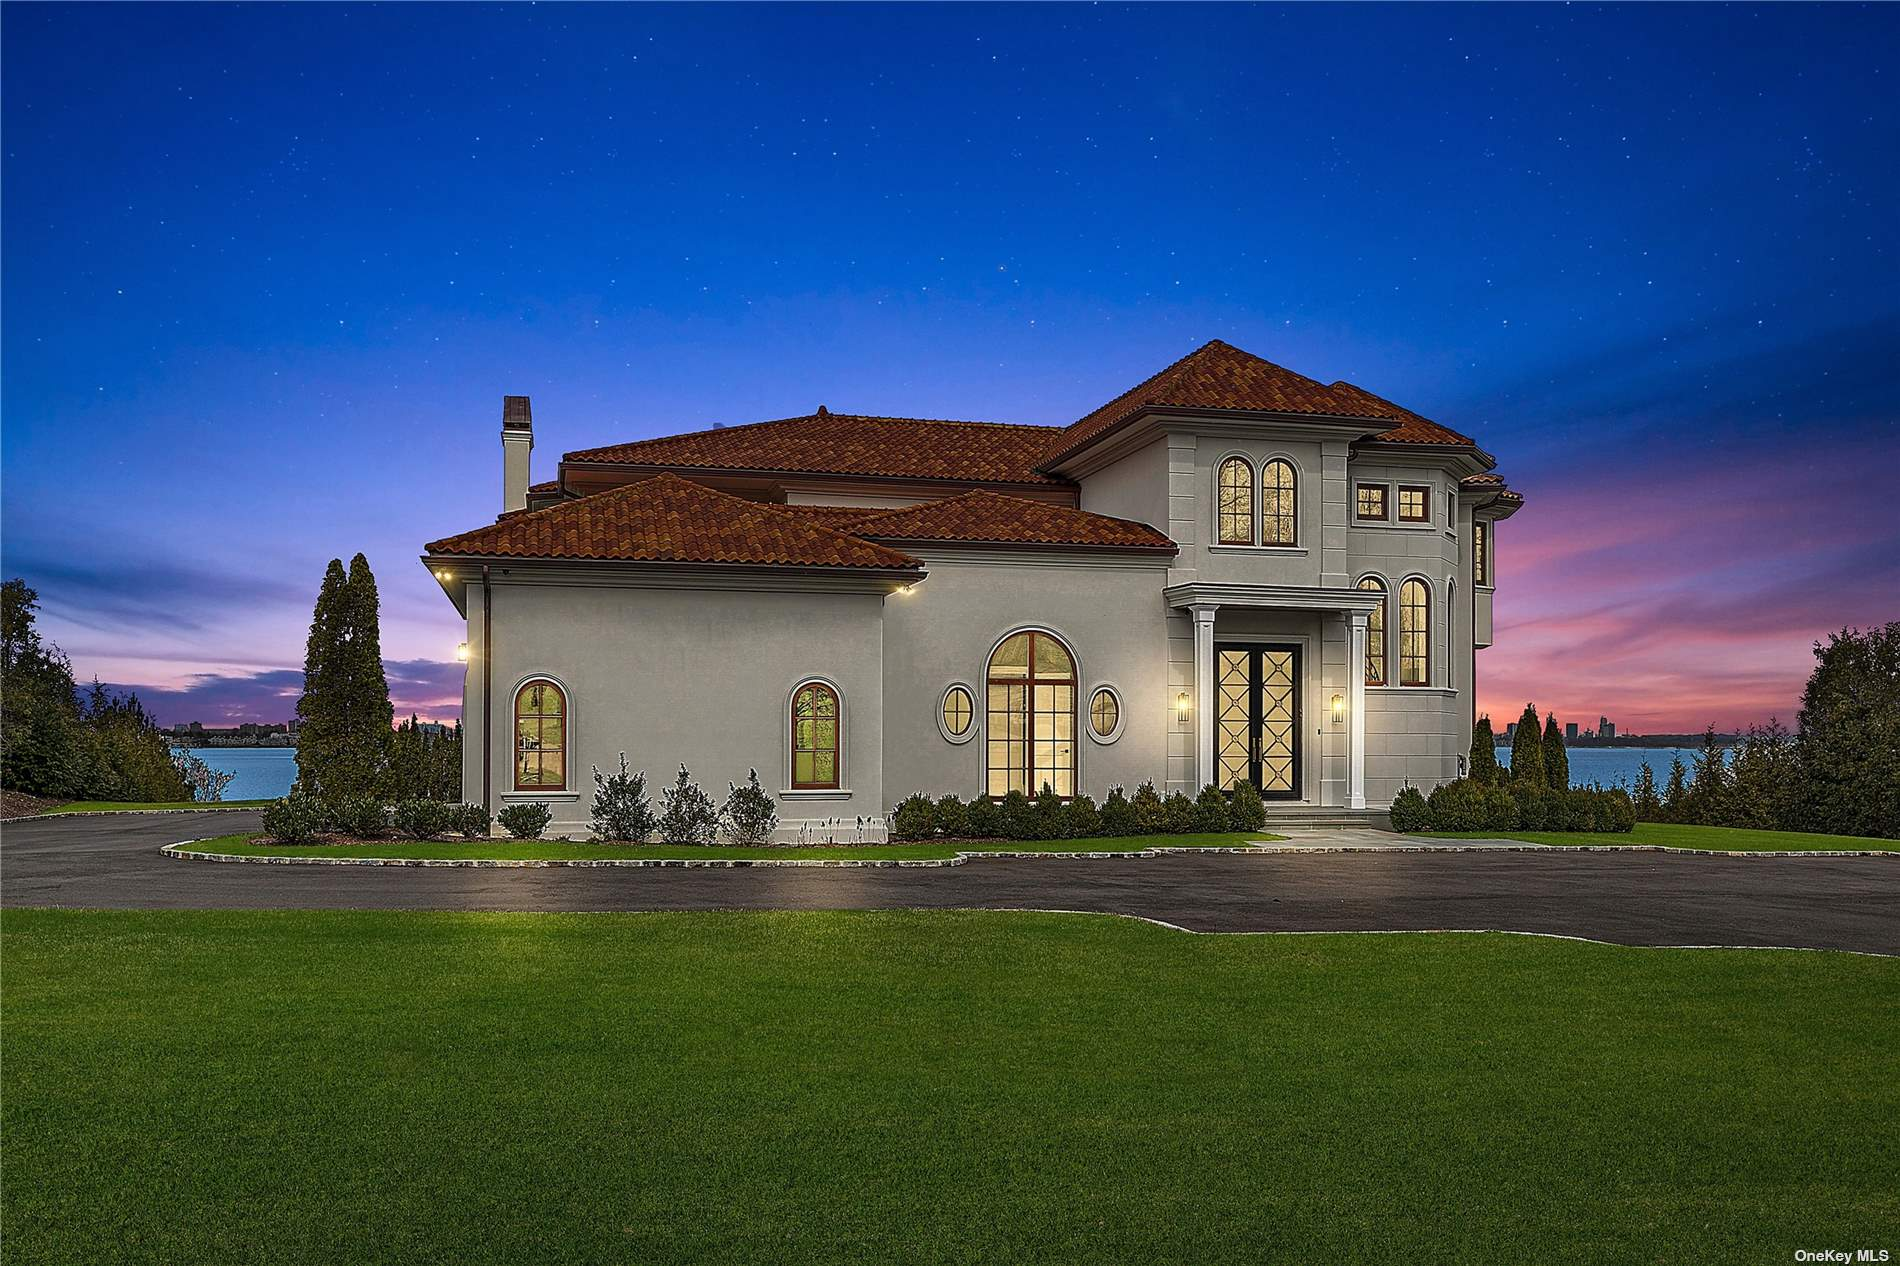 BREATHTAKING WATERFRONT OFFERING Expansive water views of the Long Island Sound, Manhattan, Throgs Neck Bridge,  Westchester and Connecticut may be enjoyed year round within this elegant new construction in the Prestigious Village of Kings Point. Privately located the end of this beautifully tree-lined cul de sac, this artistically-inspired residence is currently being completed by well known and respected Rockwell Developers LLC. The attention to detail with a clean lined approach is apparent the moment you enter this magnificent residence with its elegant curved staircase, formal dining room with custom walls and gold lined accent, herringbone wood floors, an oval shaped custom blue colored library or office with walls of windows and FPLC, and the inviting eat-in-kitchen with custom cabinetry, marble countertops, and high end appliances, just to name a few. 1.46 Acres of water and private beachfront.